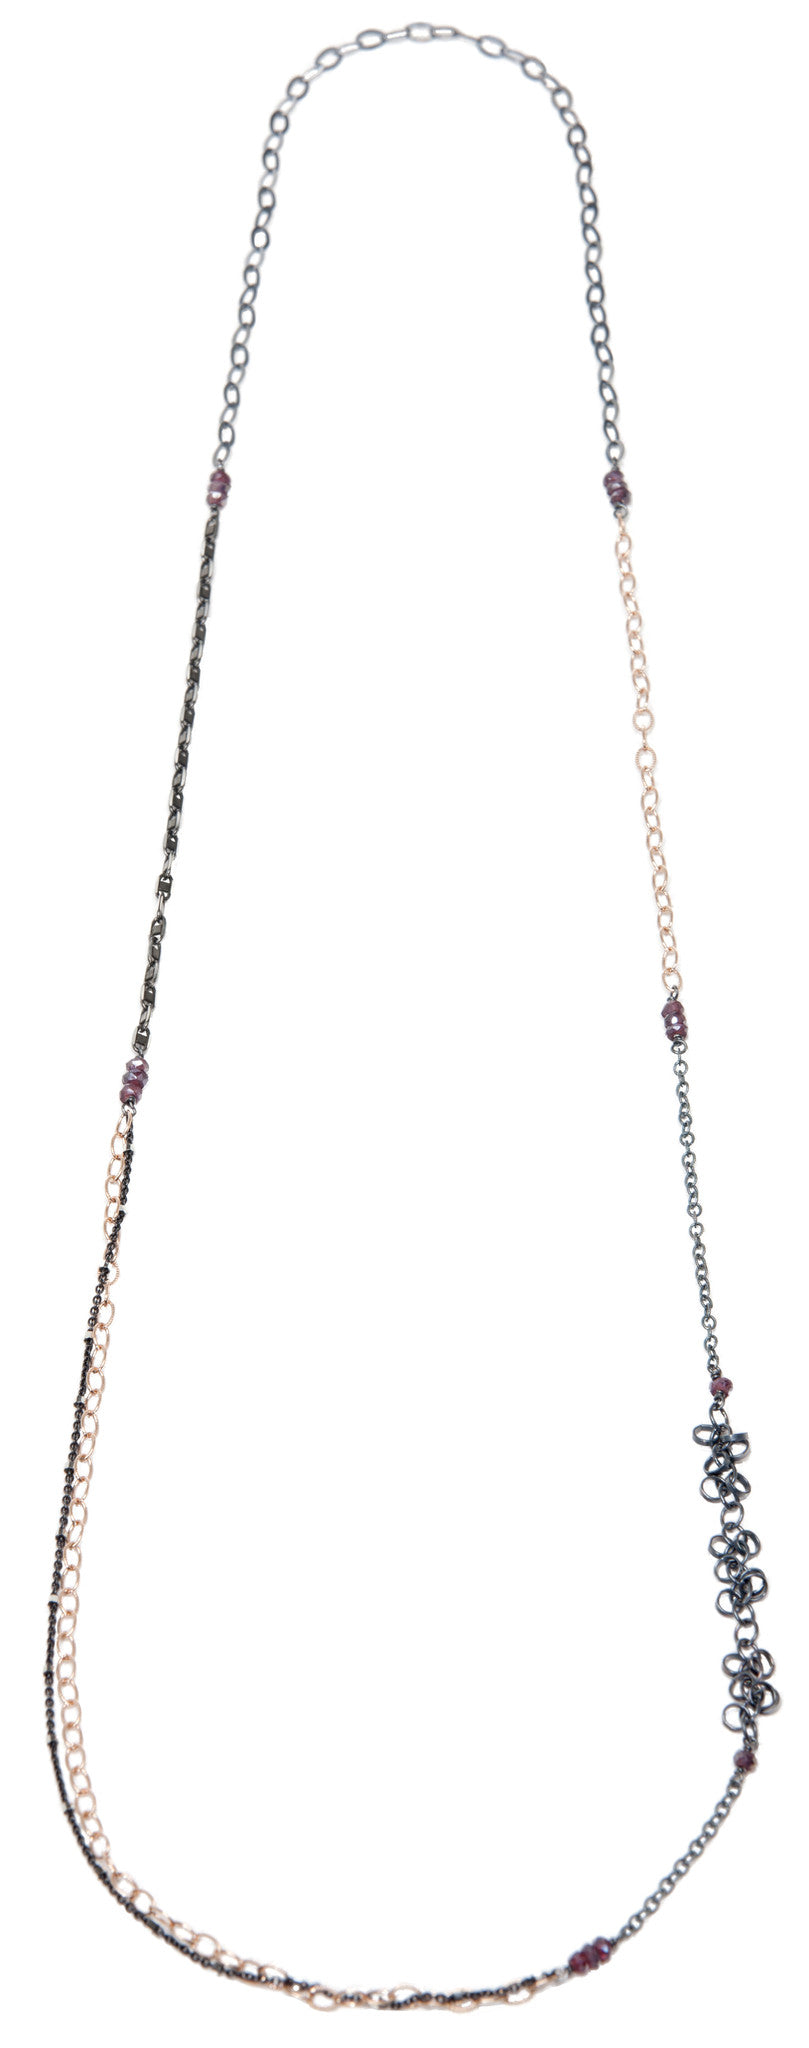 layering chain necklace - oxidized silver and rose gold filled